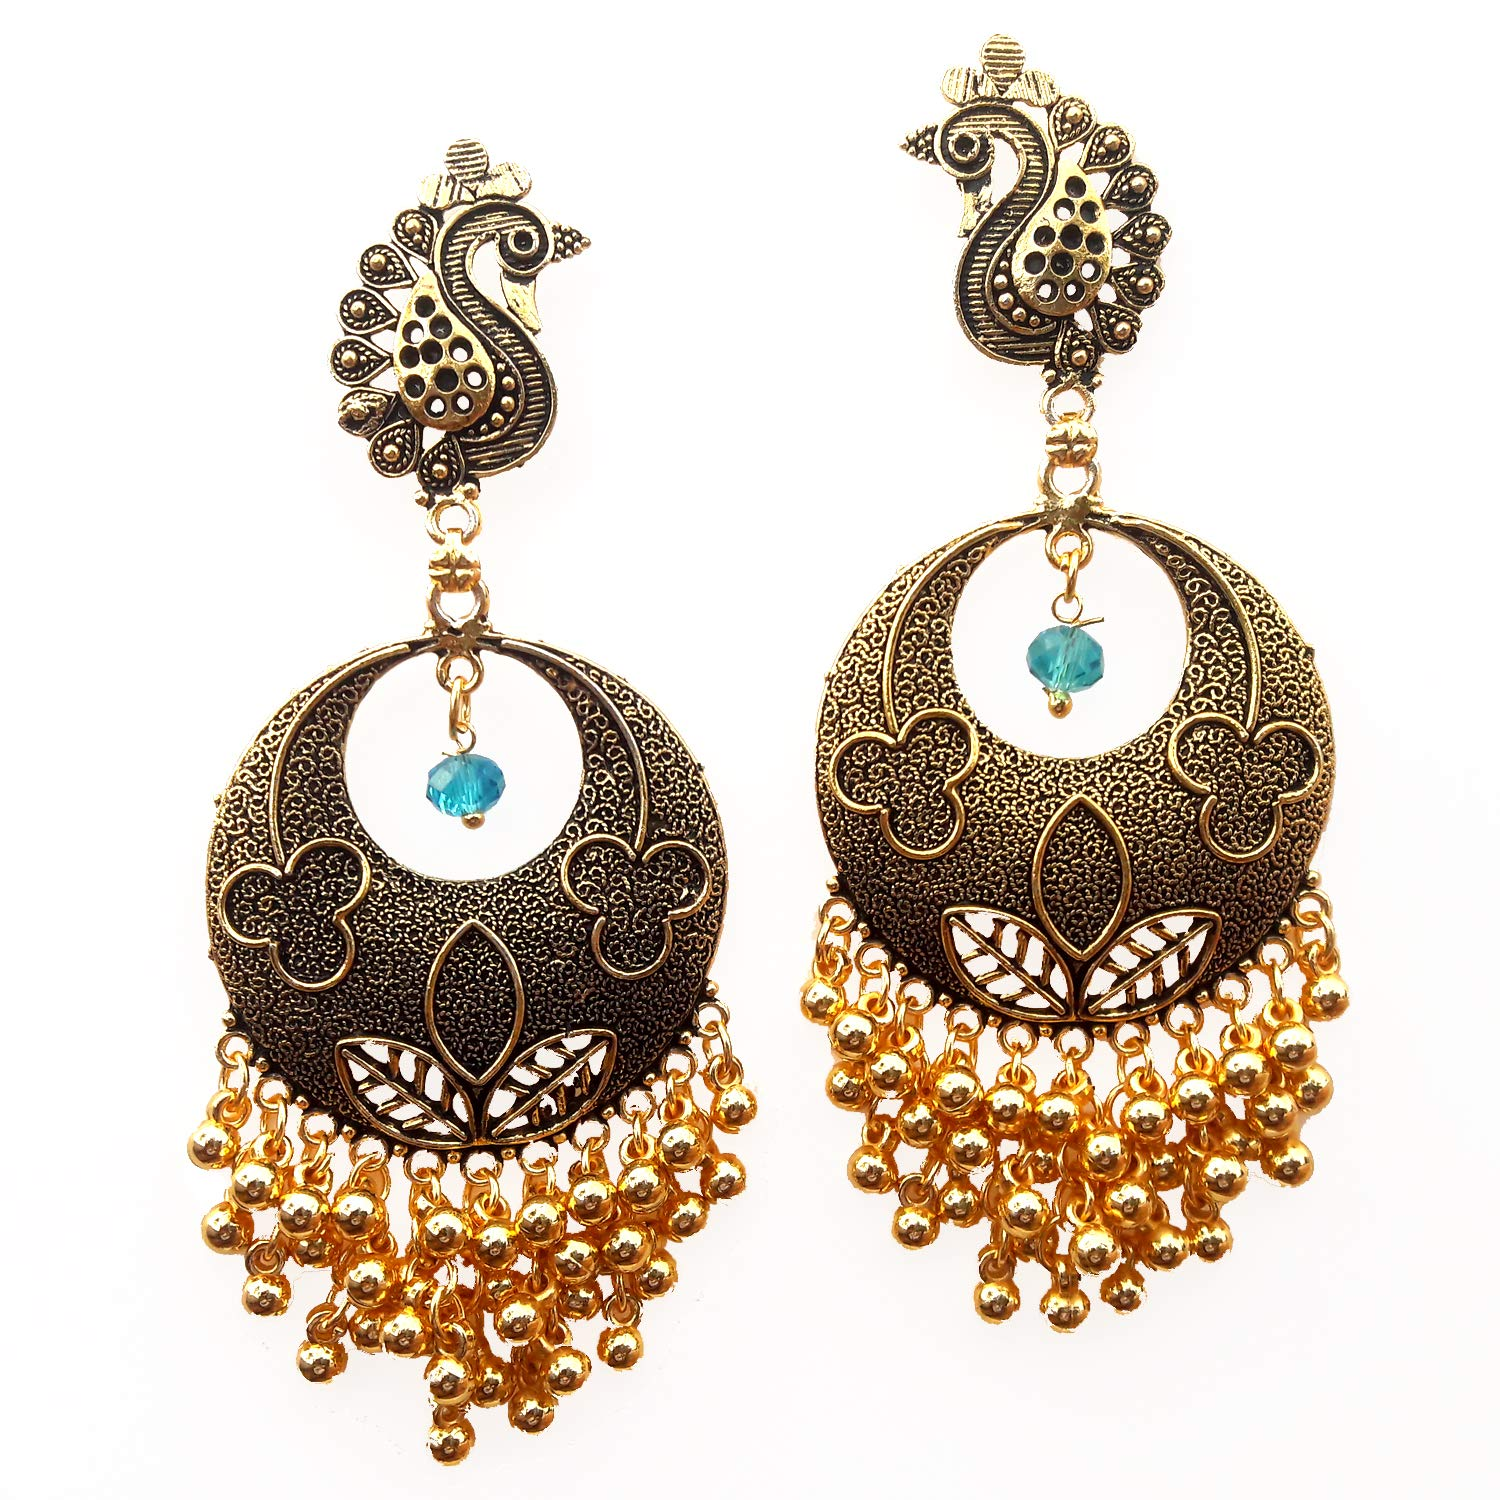 Buy Traditional Gold Plated Rajkot Women's Earrings at Amazon.in